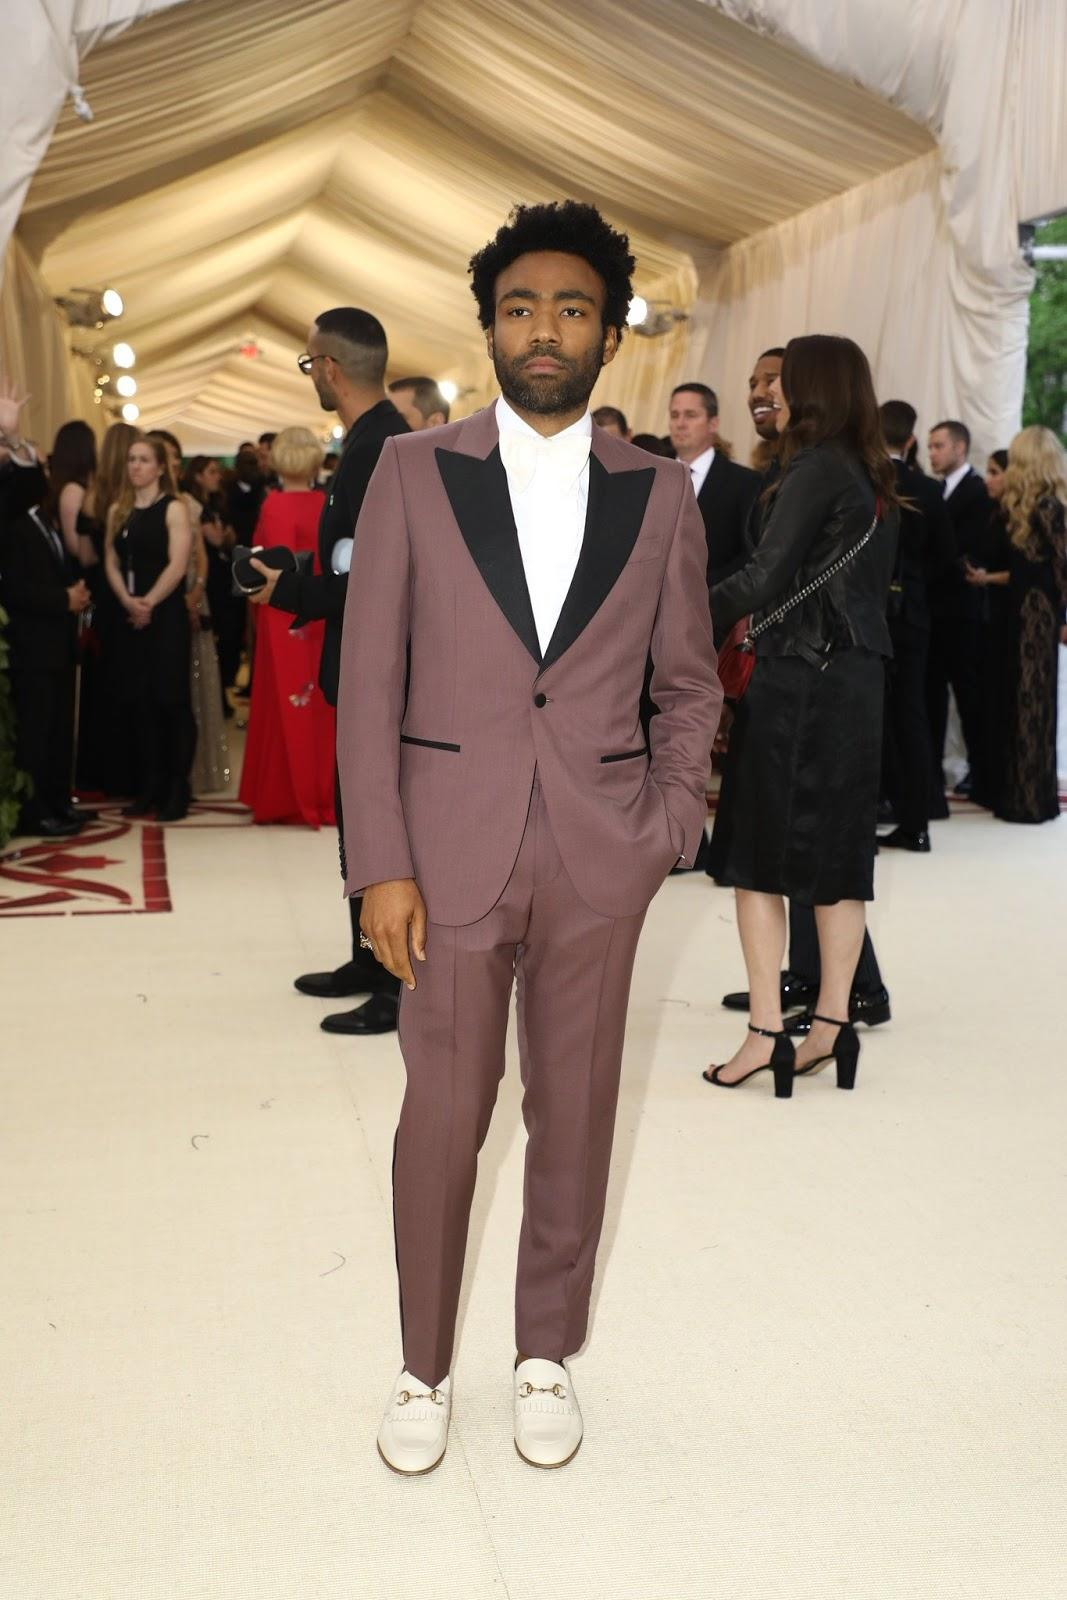 Discussion on this topic: Key Glover Fashion Items, key-glover-fashion-items/